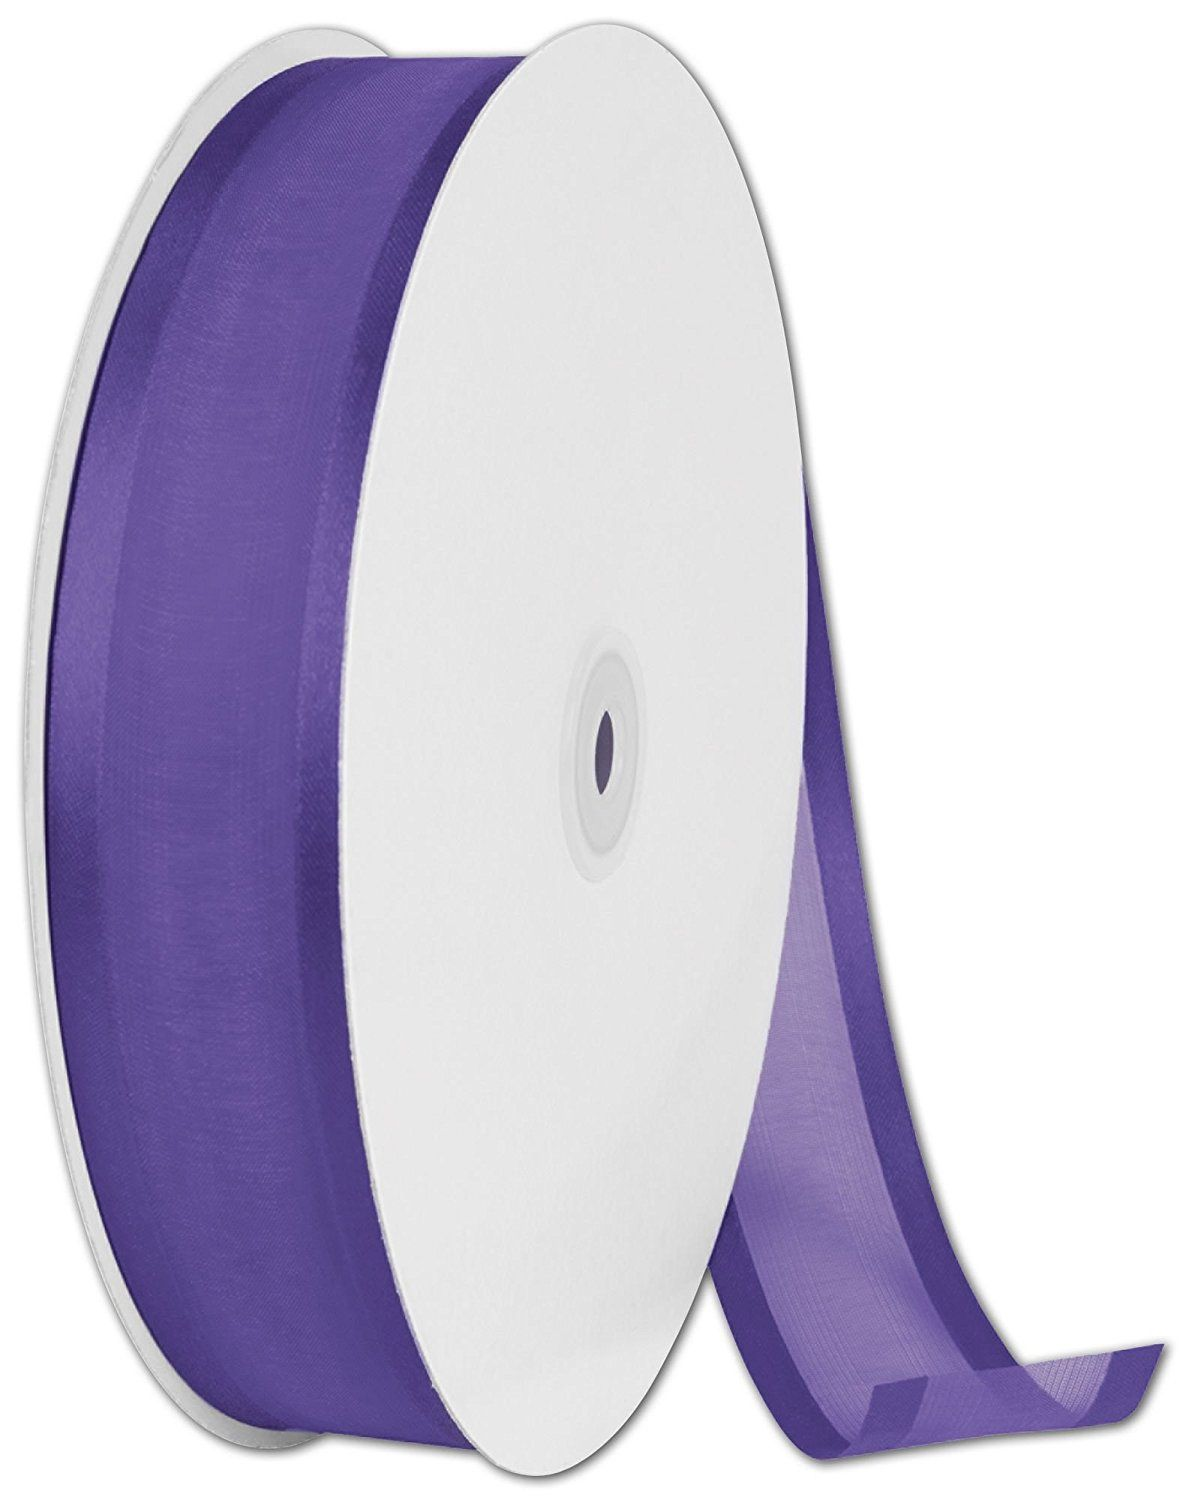 Ribbons Solid Color - Organza Satin Edge Purple Ribbon, 1 1/2' x 100 Yds (1 Roll) - BOWS-313-26 >>> Click image for more details.